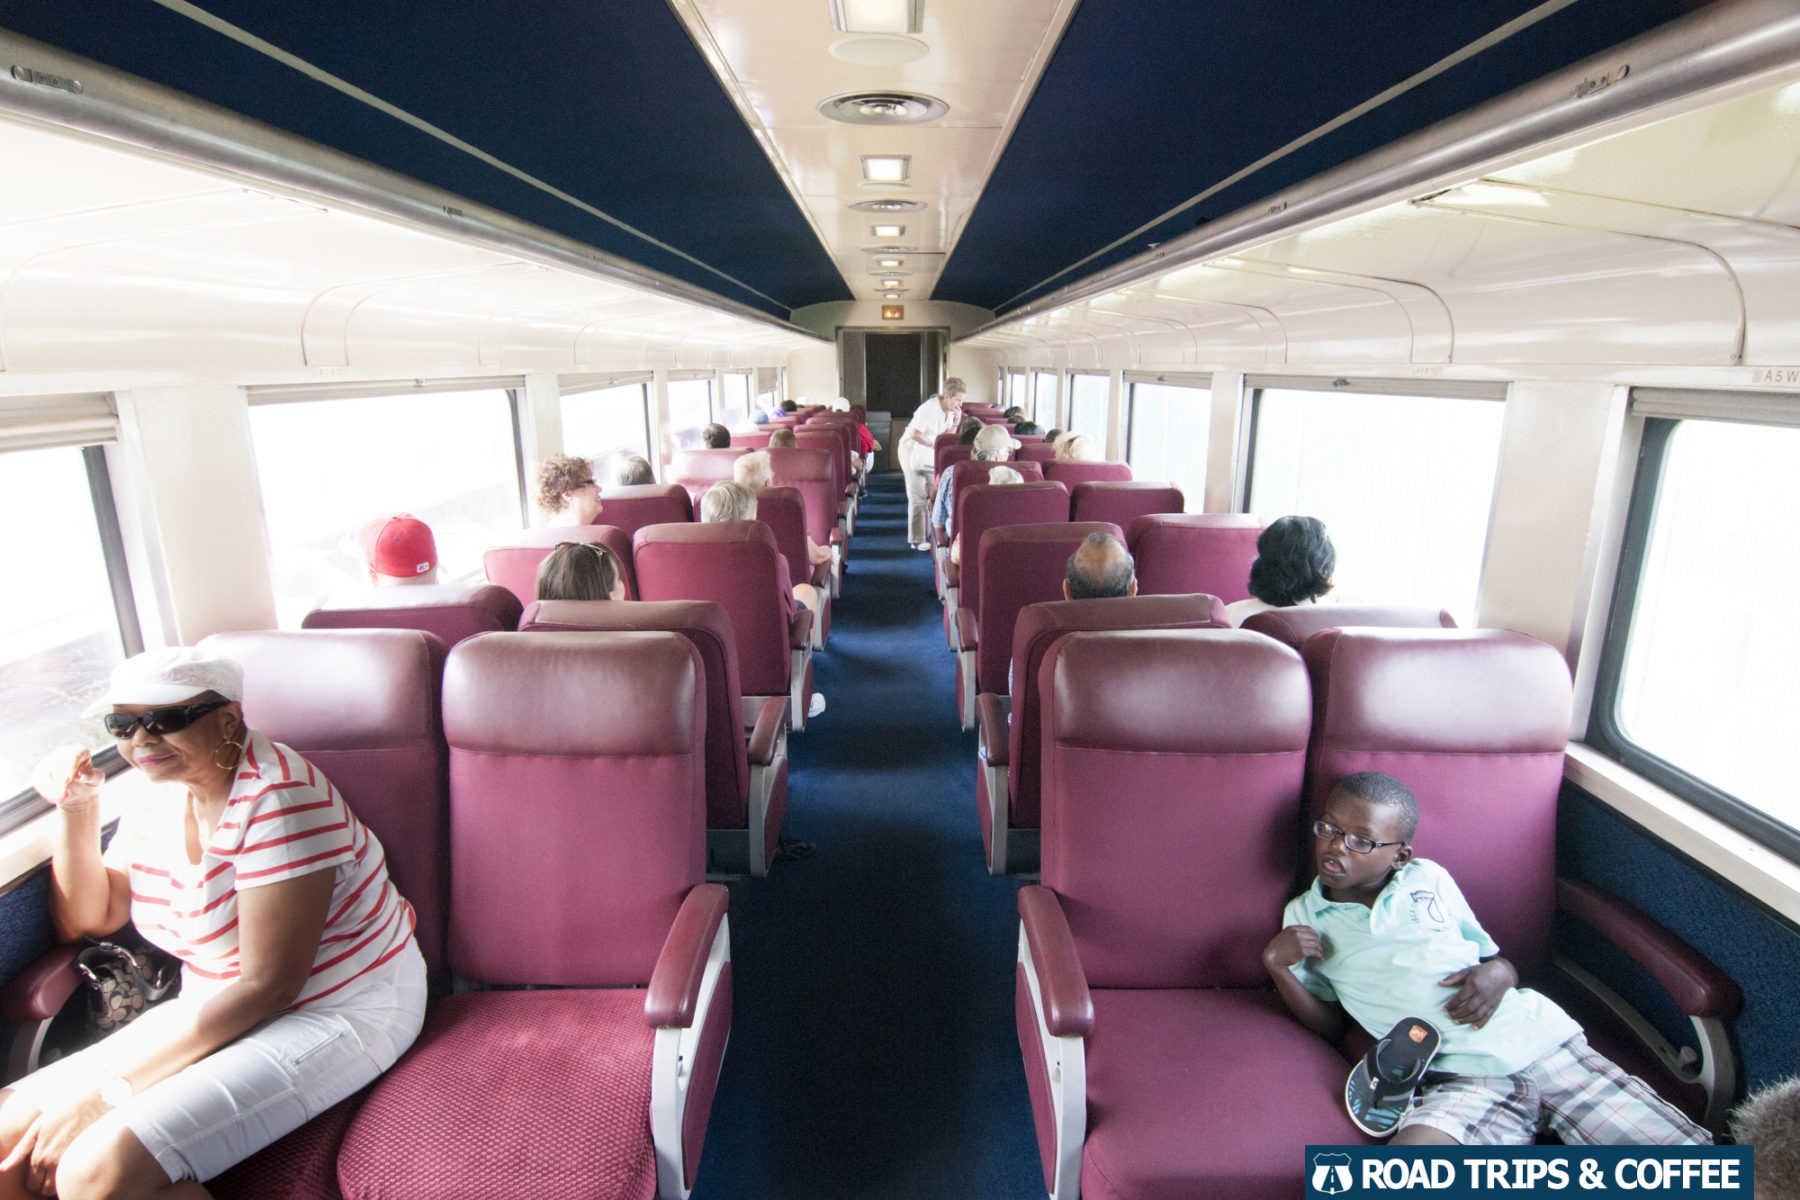 Air conditioning and comfortable seats inside the train cars with the Tennessee Valley Railroad Museum in Chattanooga, Tennessee